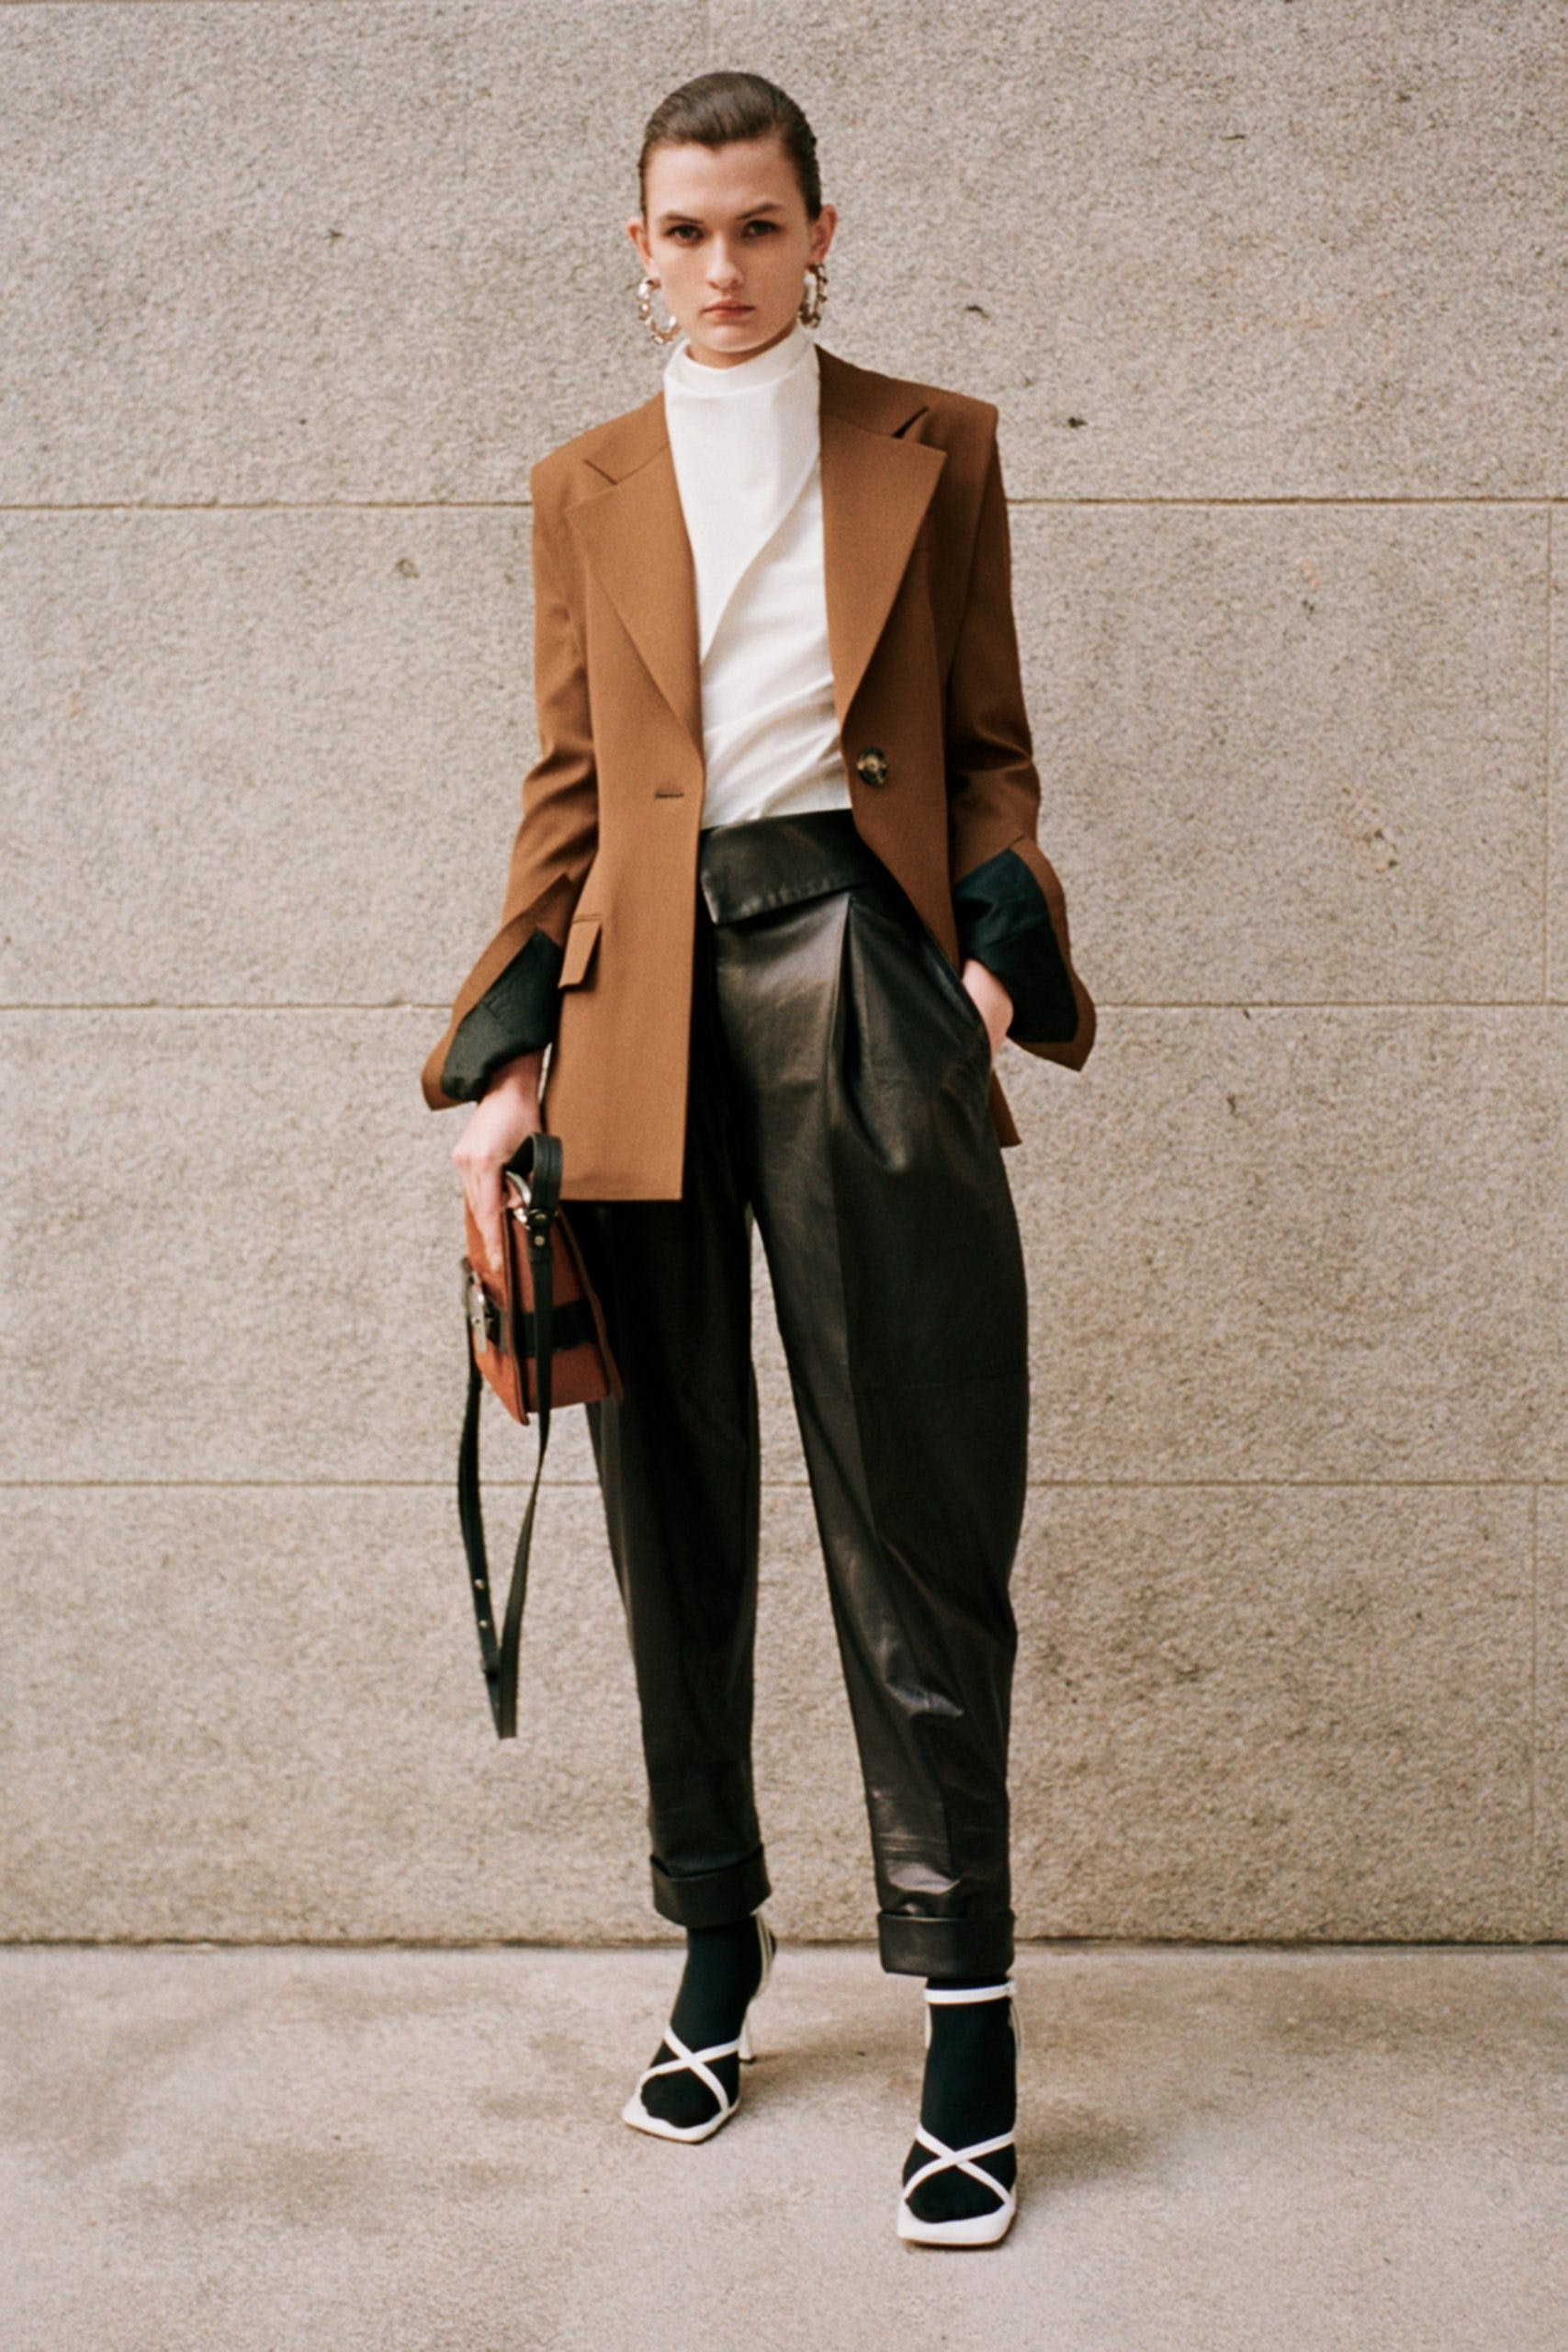 proenza schouler pf20 brown blazer white cowl top black leather fold over trousers white strap heels